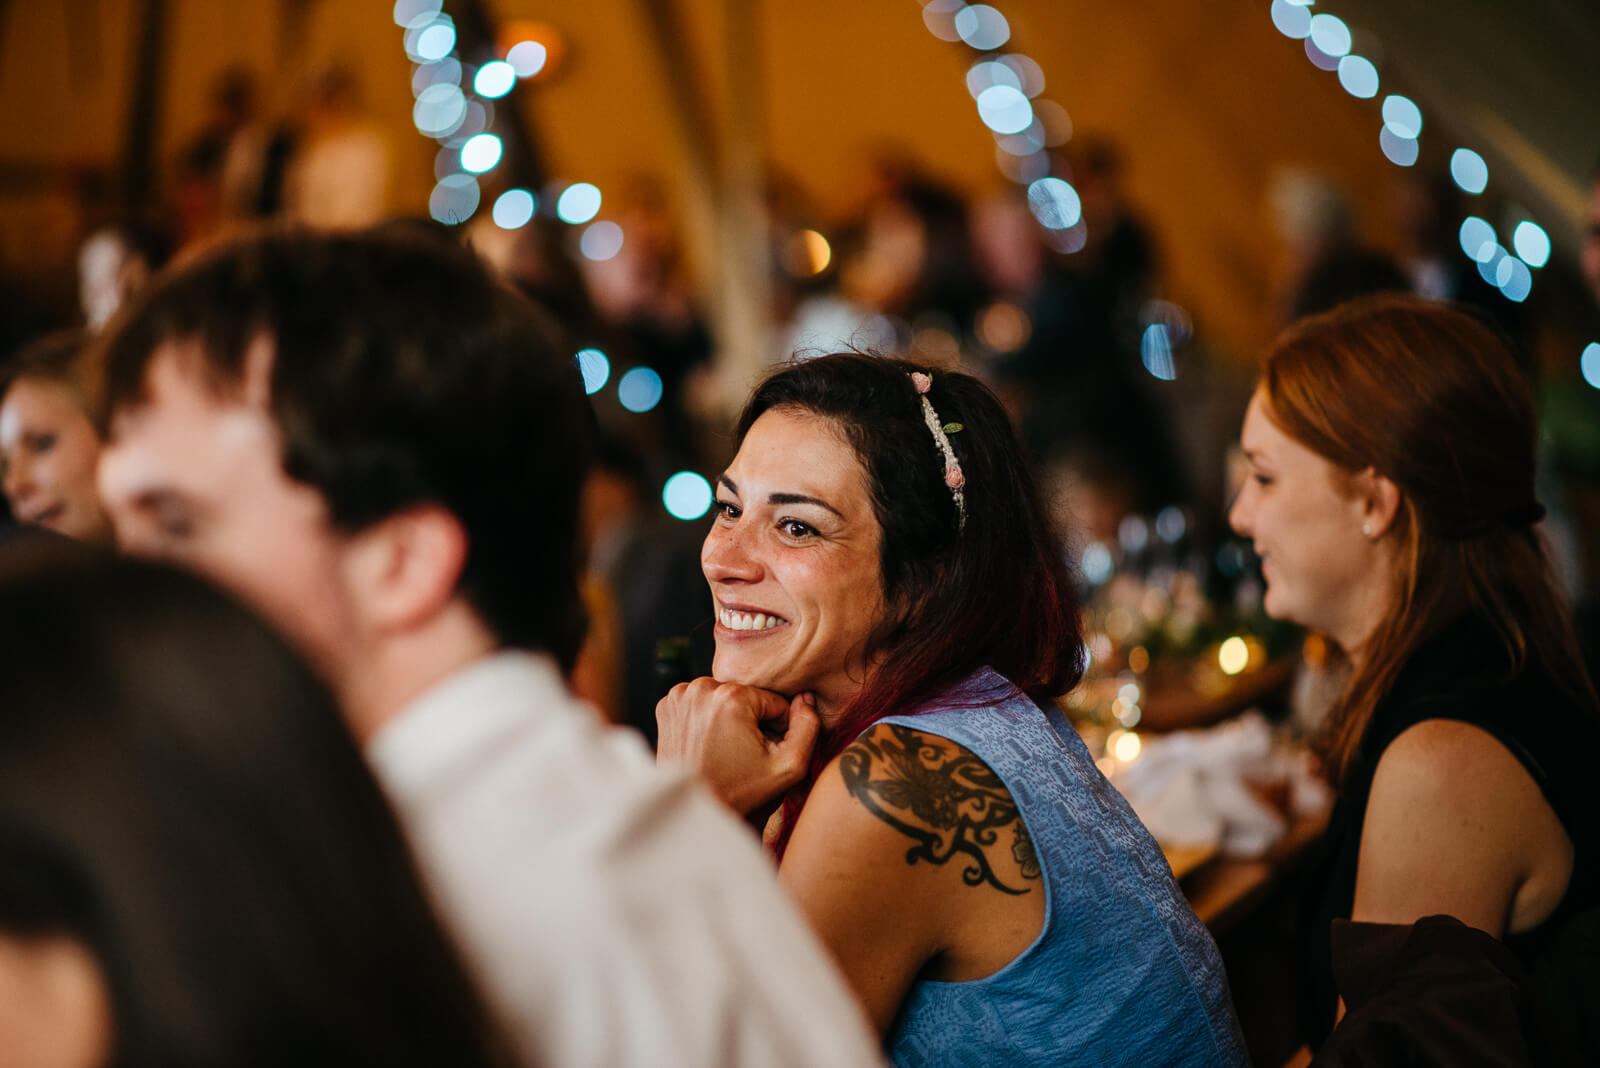 Guests smiling during speeches at Shropshire tipi wedding